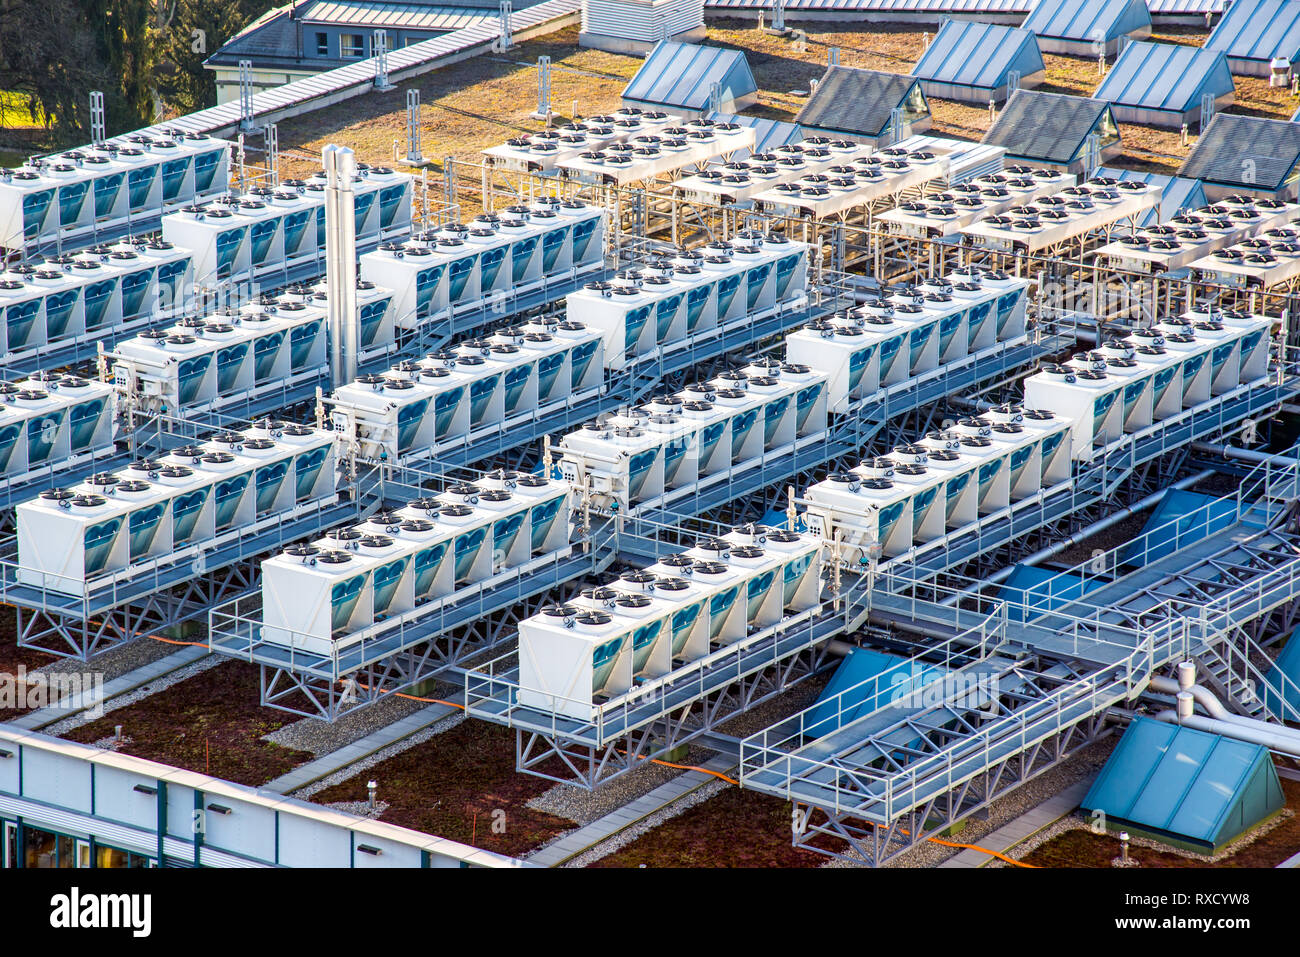 Air conditioner units on a roof of industrial building - Stock Image